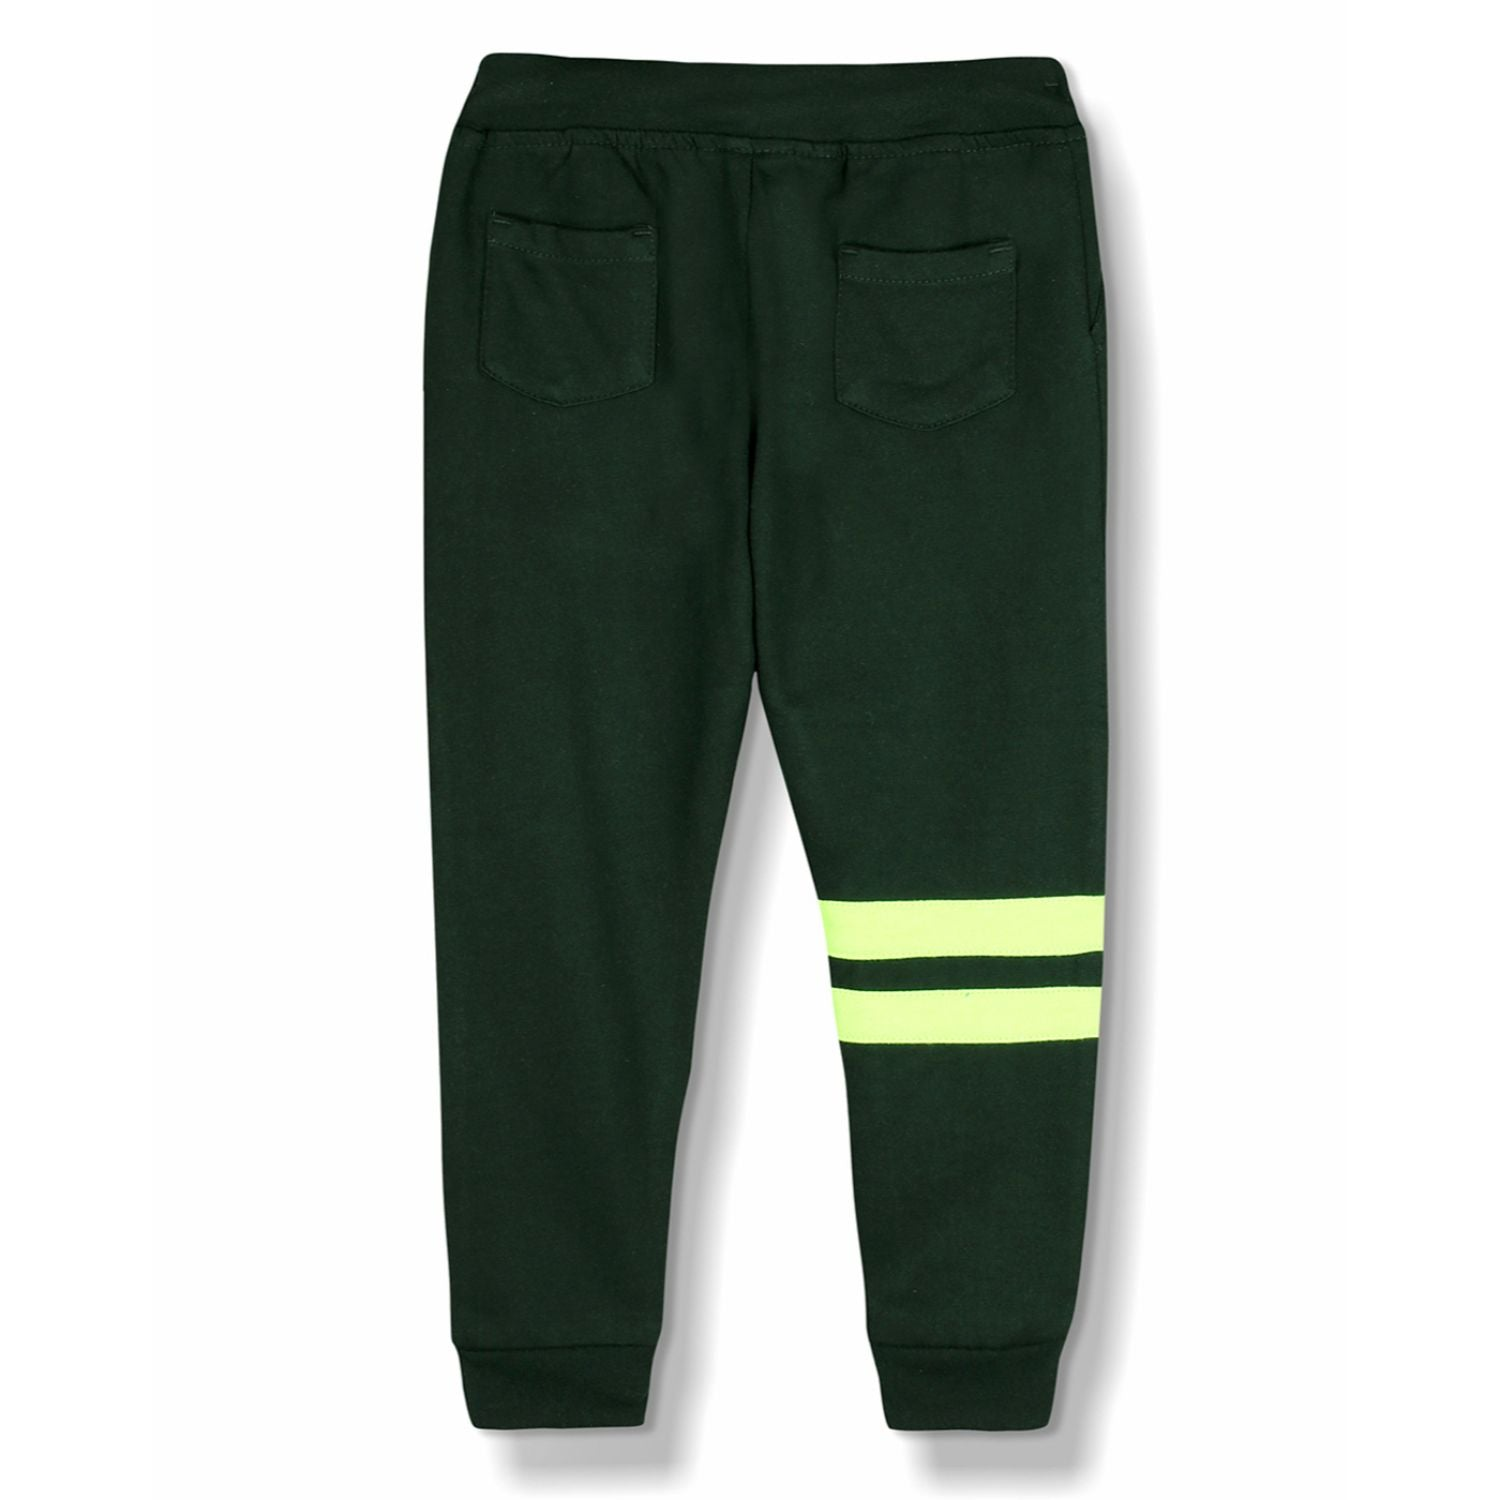 Tracker's Sweatpant for kids